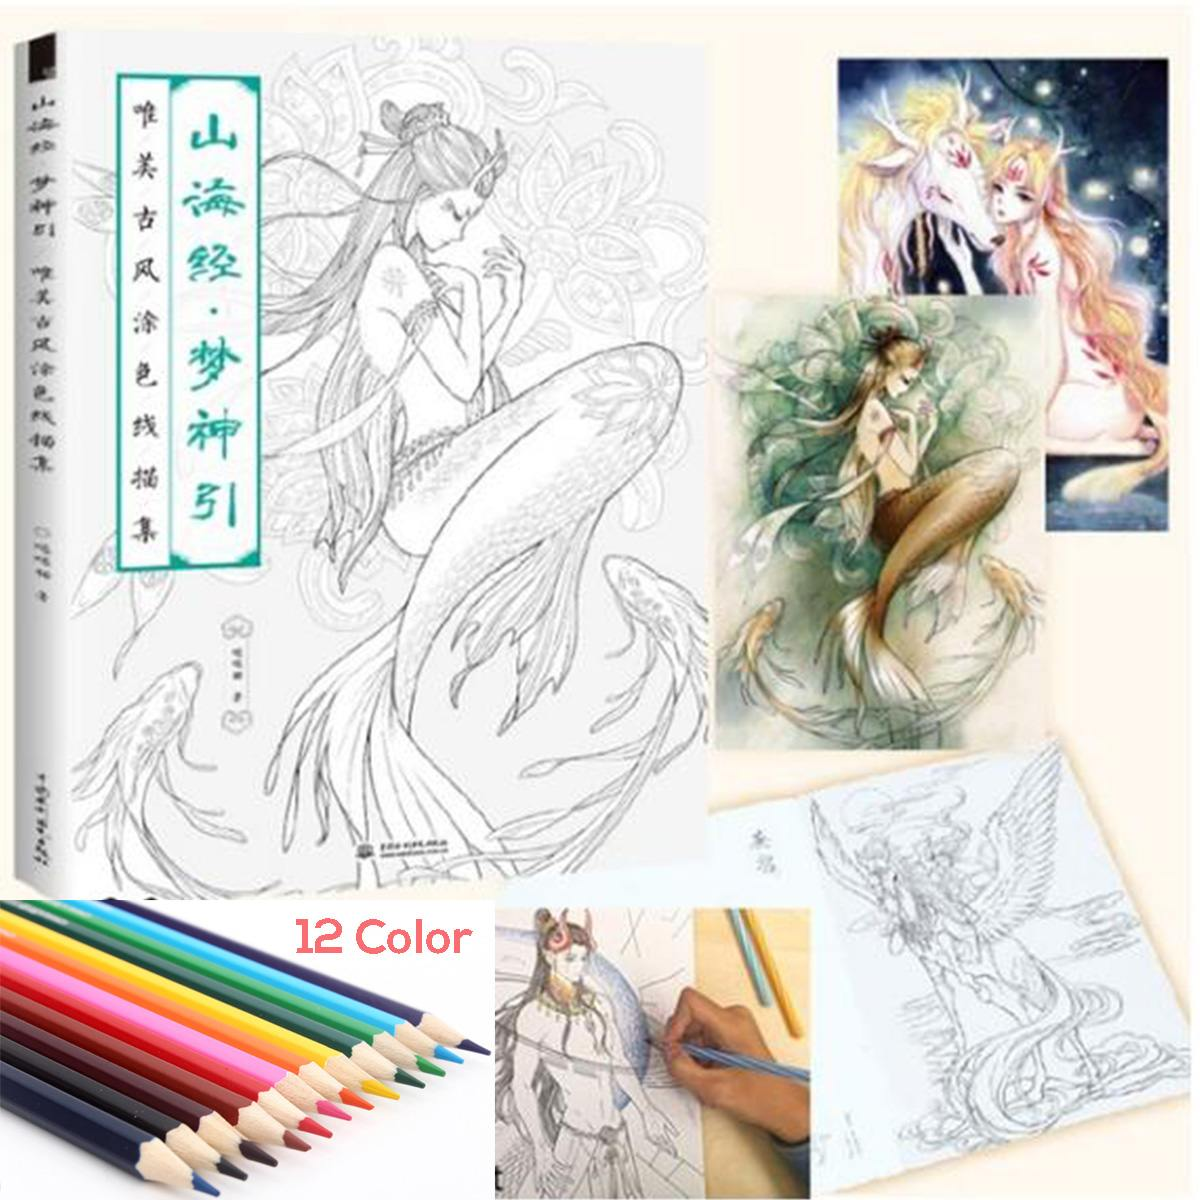 Coloring Book Line Sketch Drawing Textbook Chinese Ancient Beauty Painting Book Adult Kids Anti Stress + 12PCS Coloring PencilsColoring Book Line Sketch Drawing Textbook Chinese Ancient Beauty Painting Book Adult Kids Anti Stress + 12PCS Coloring Pencils